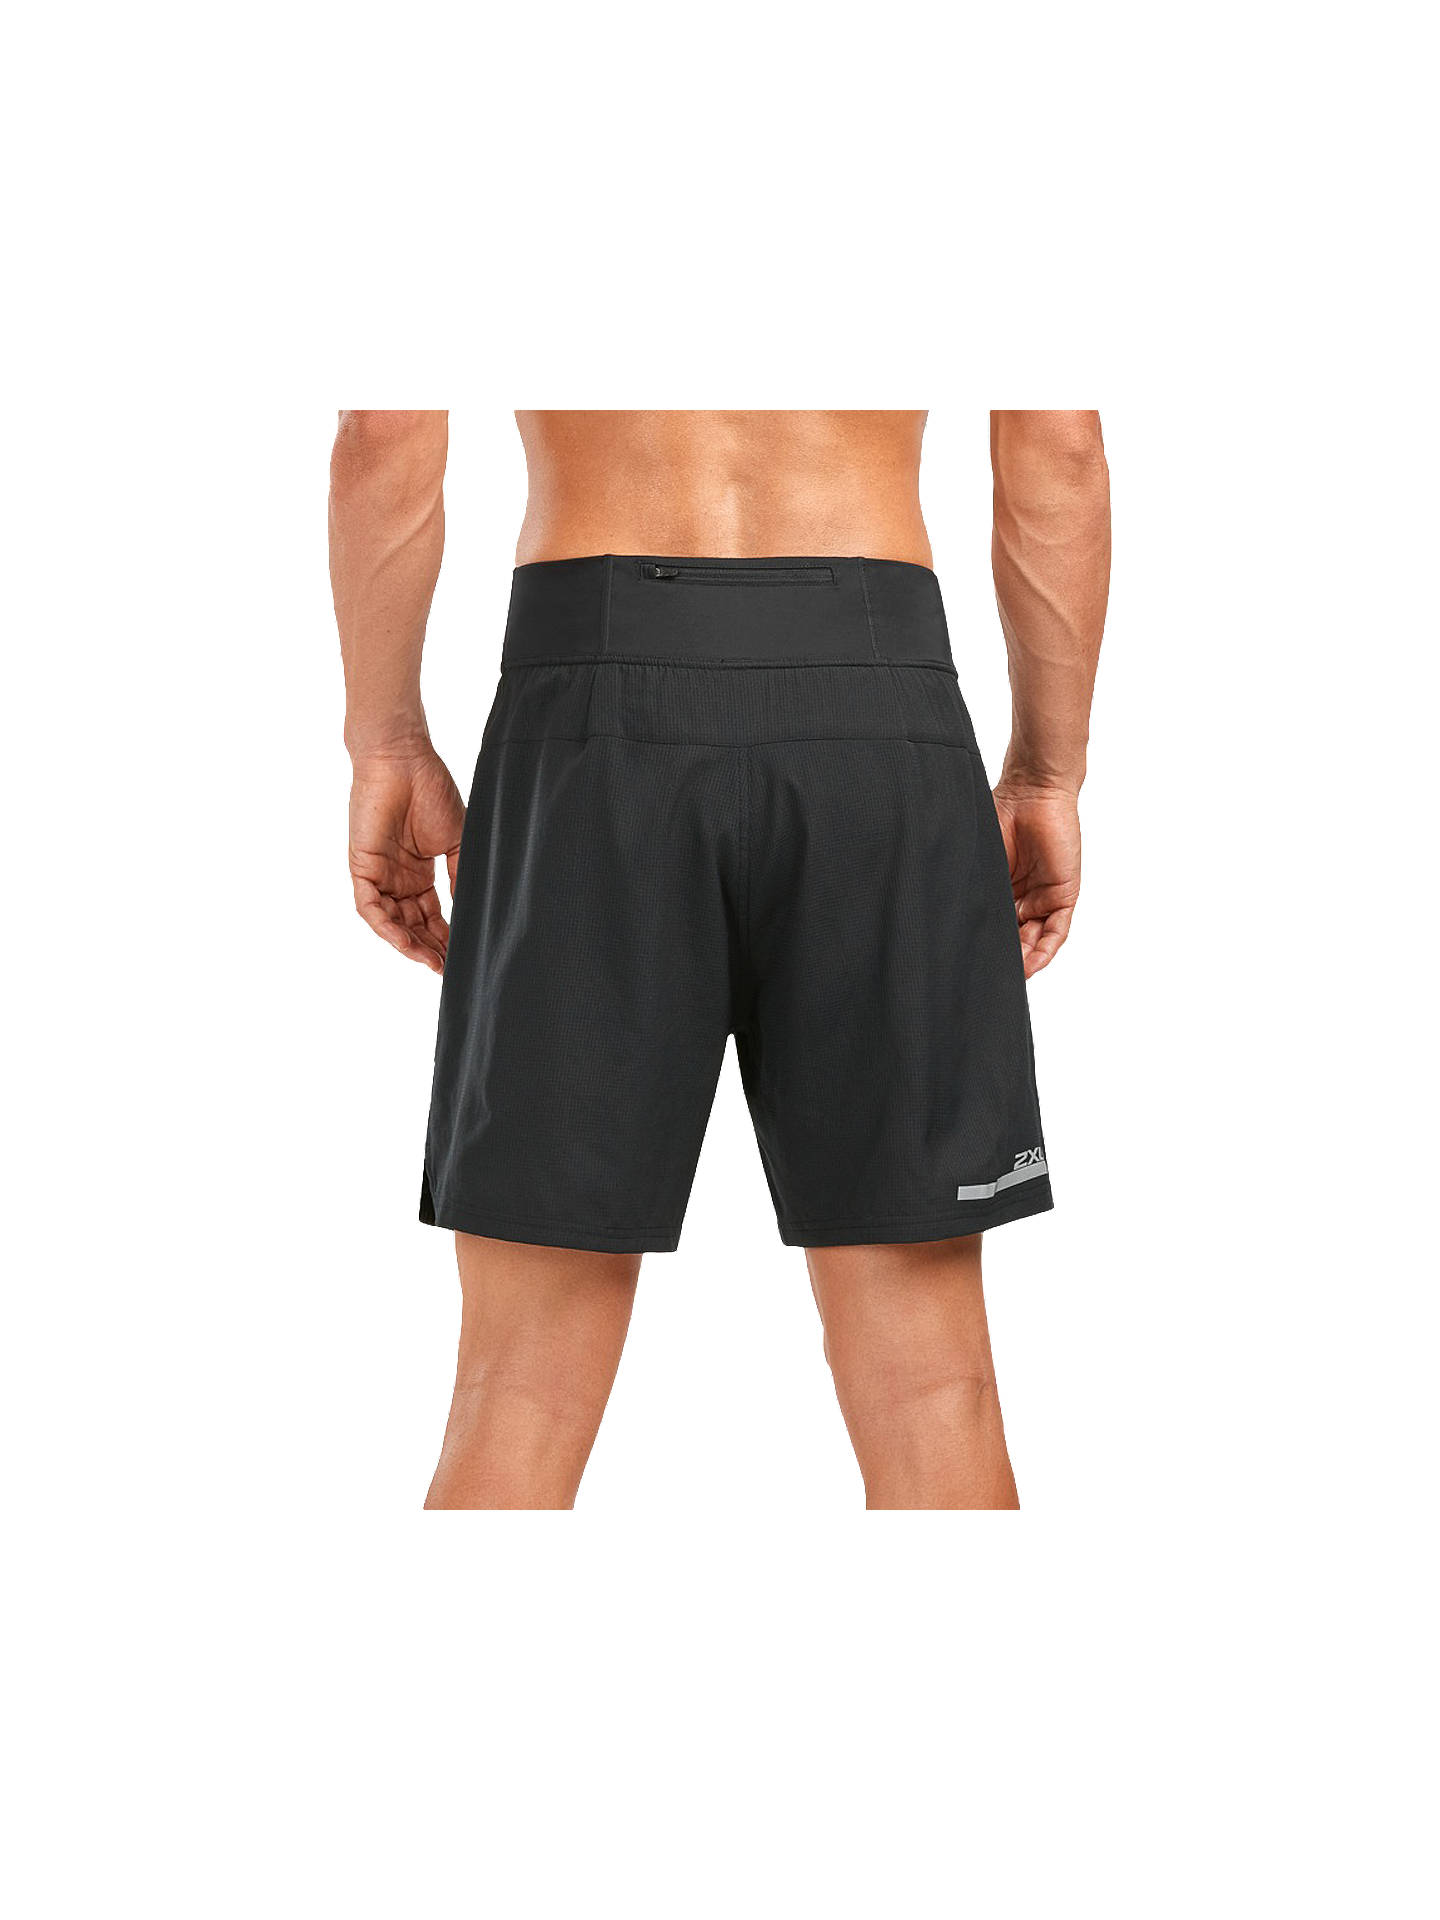 7478ea7a168fa ... Buy 2XU Compression Double Layer 7 Inch Training Shorts, Black/Silver,  S Online ...